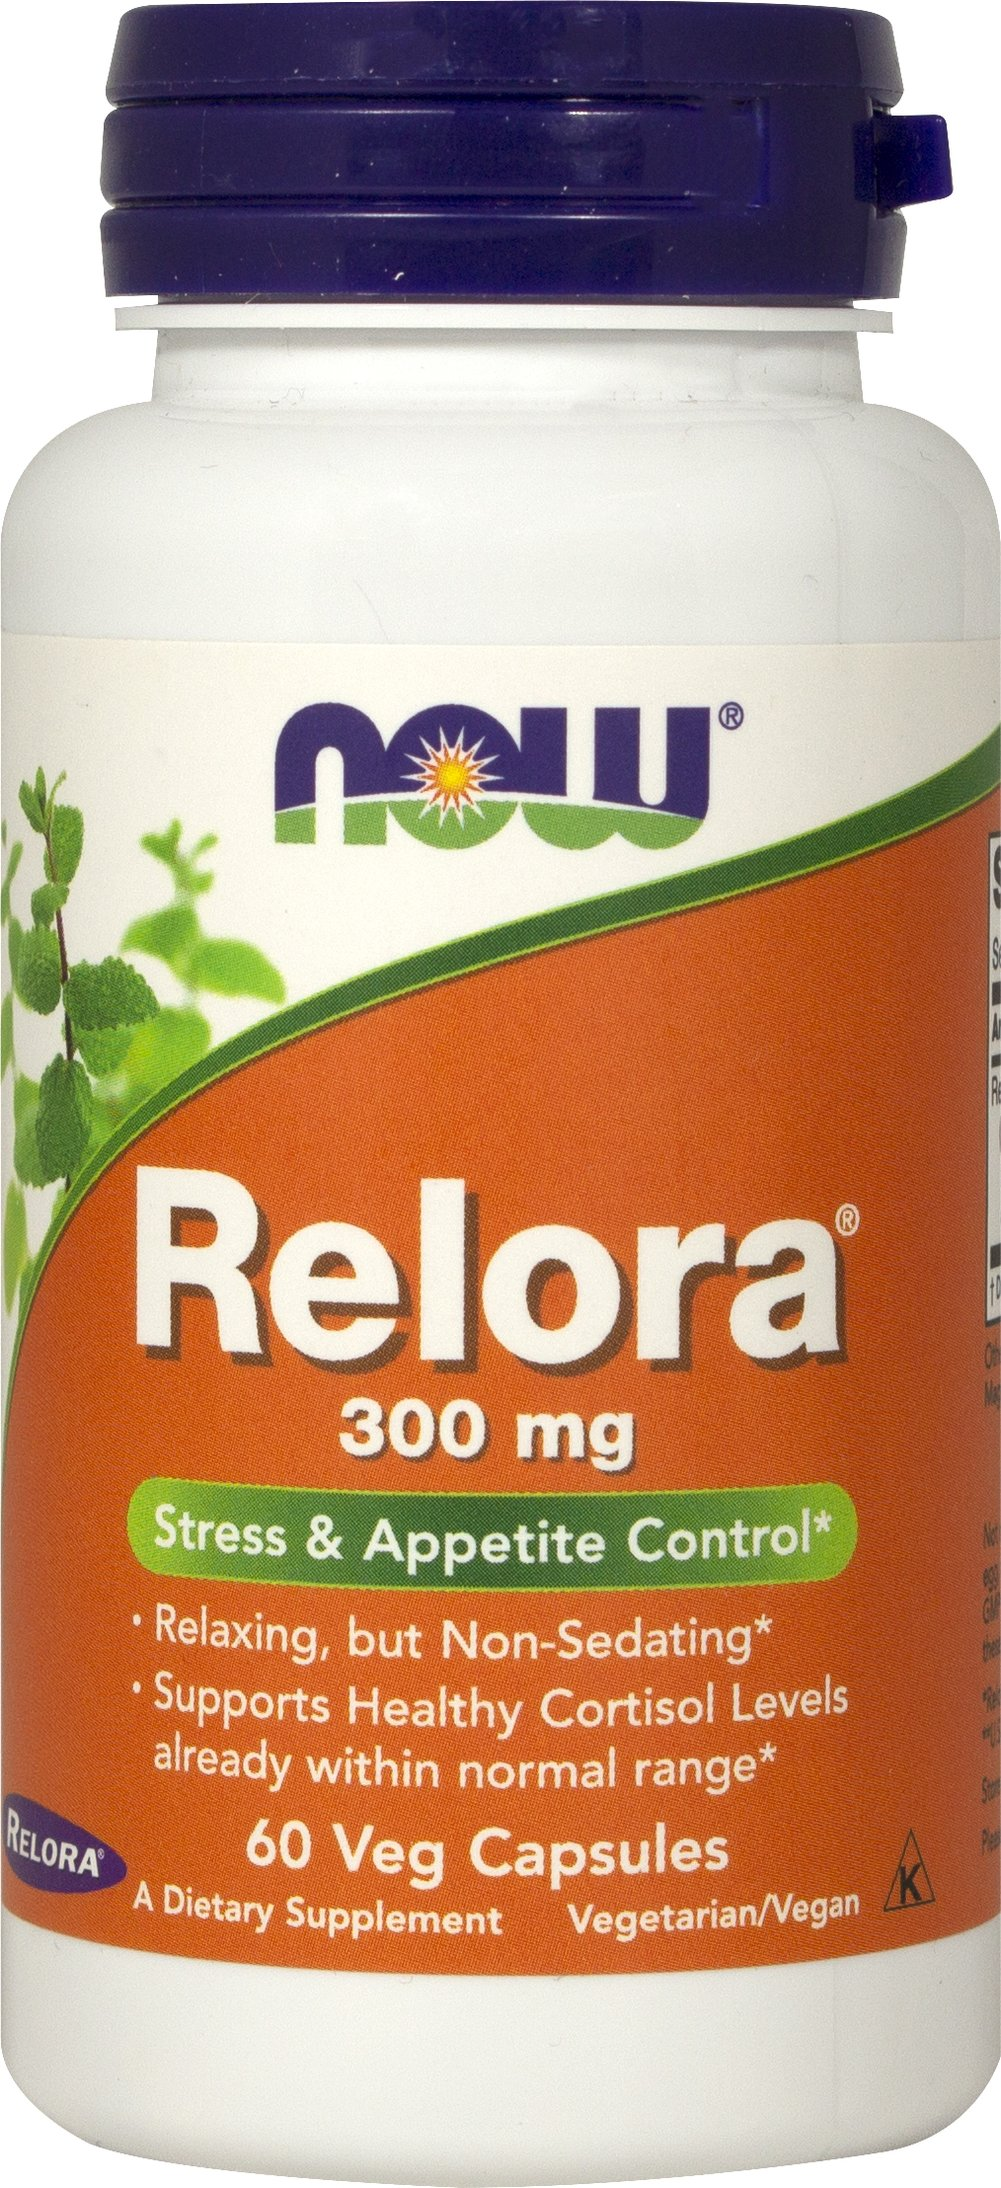 Relora Thumbnail Alternate Bottle View